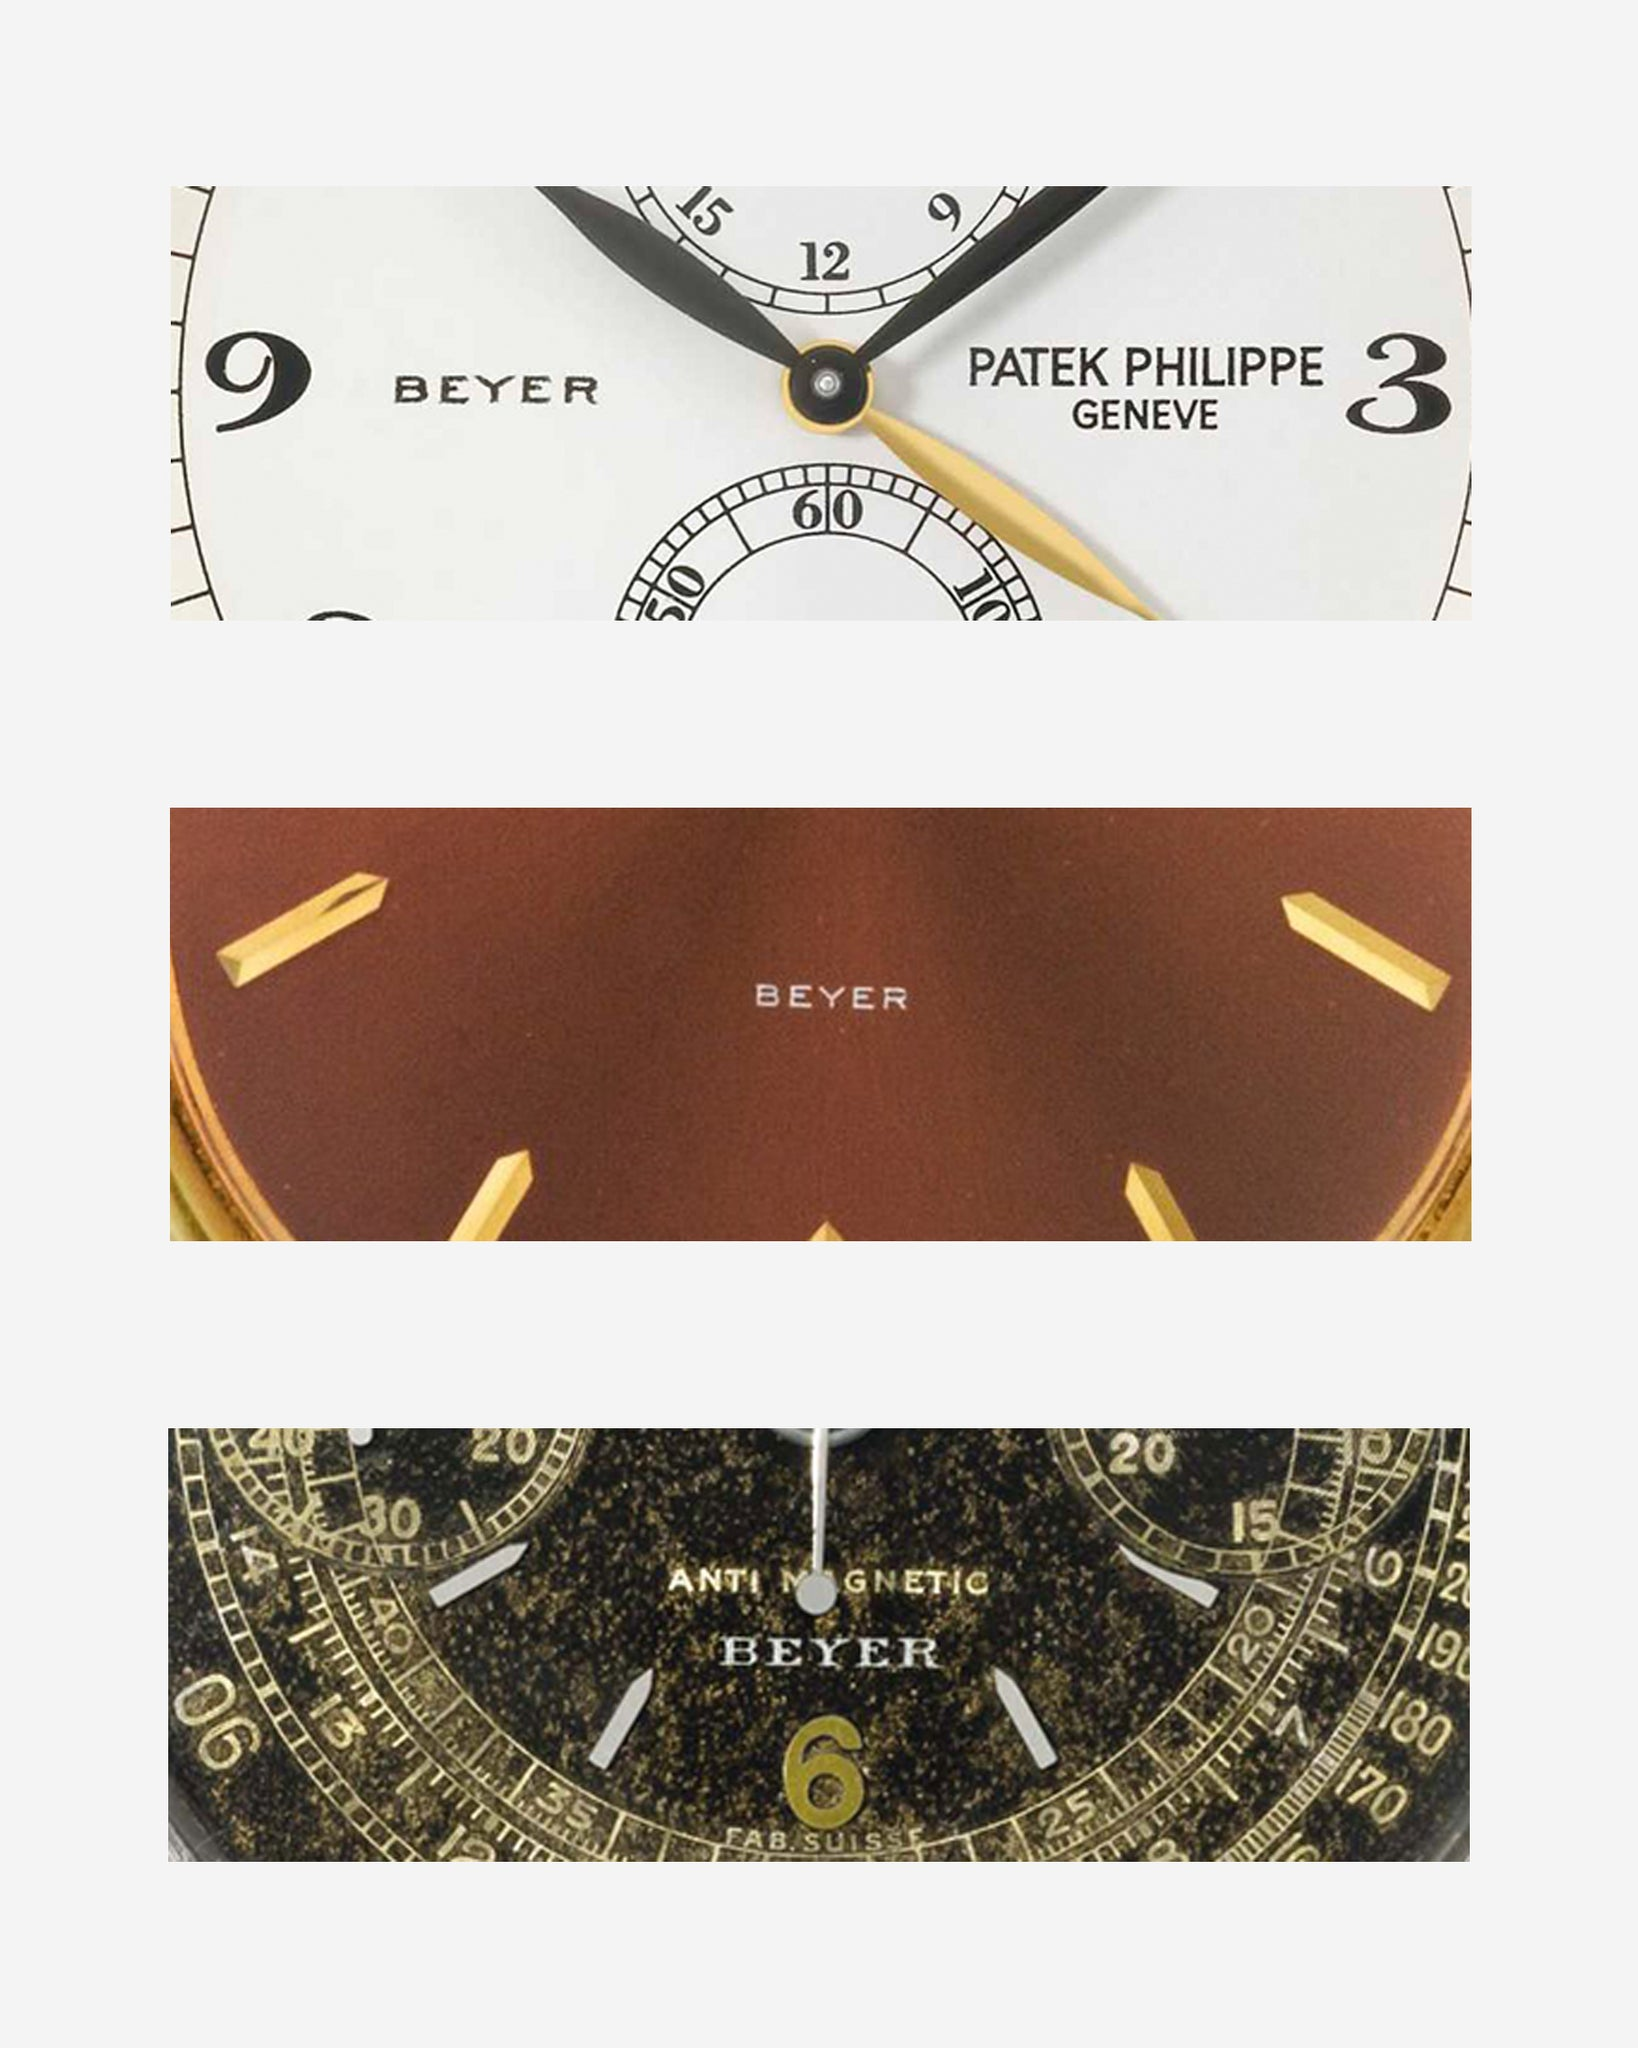 Patek Philippe ref. 5034 (top), a Patek Philippe ref. 3605 (middle) and a Rolex ref. 3525 close ups on Beyer signatures for A Collected Man London